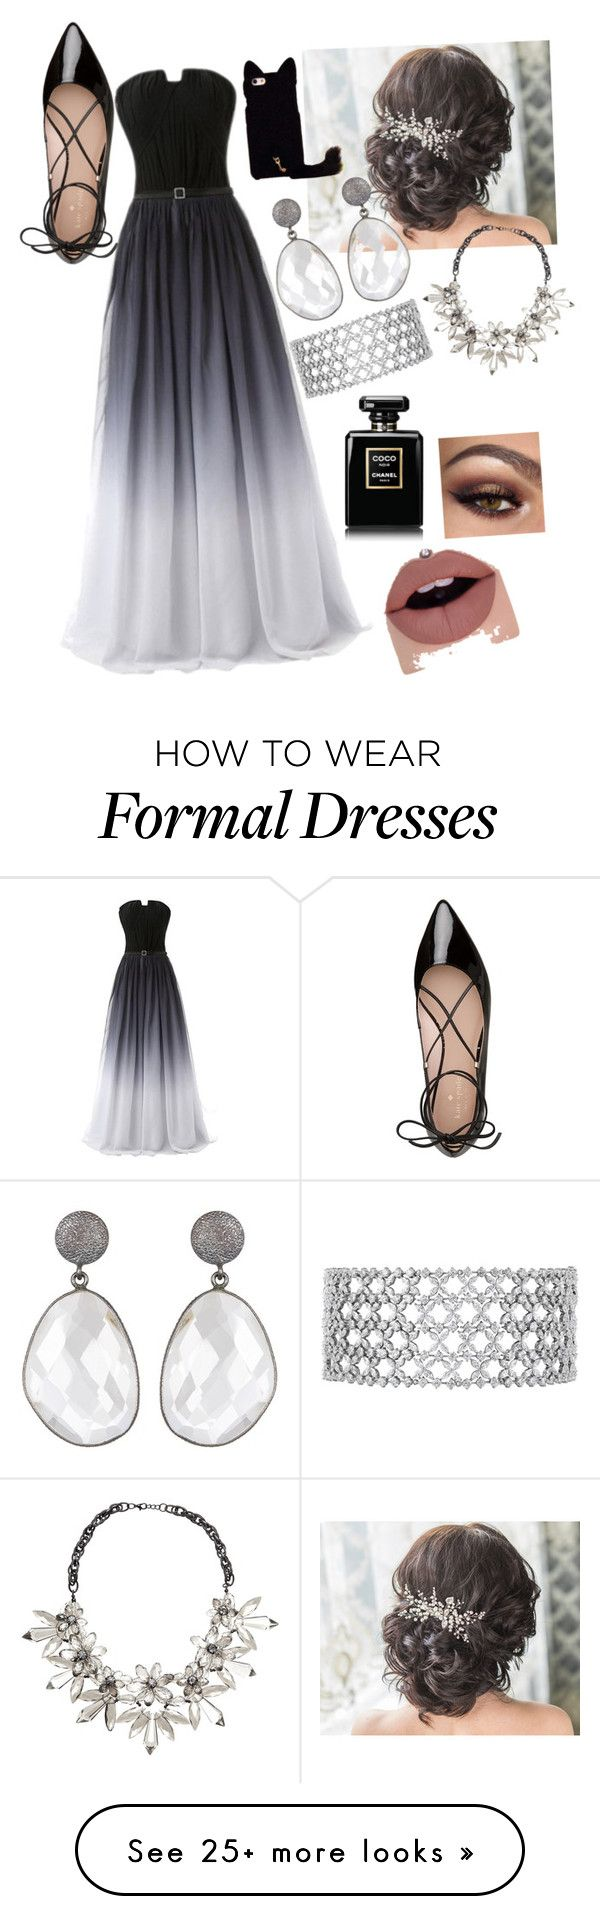 """bridesmaid"" by ivy-mary-clark on Polyvore featuring Kate Spade and John Lewis"